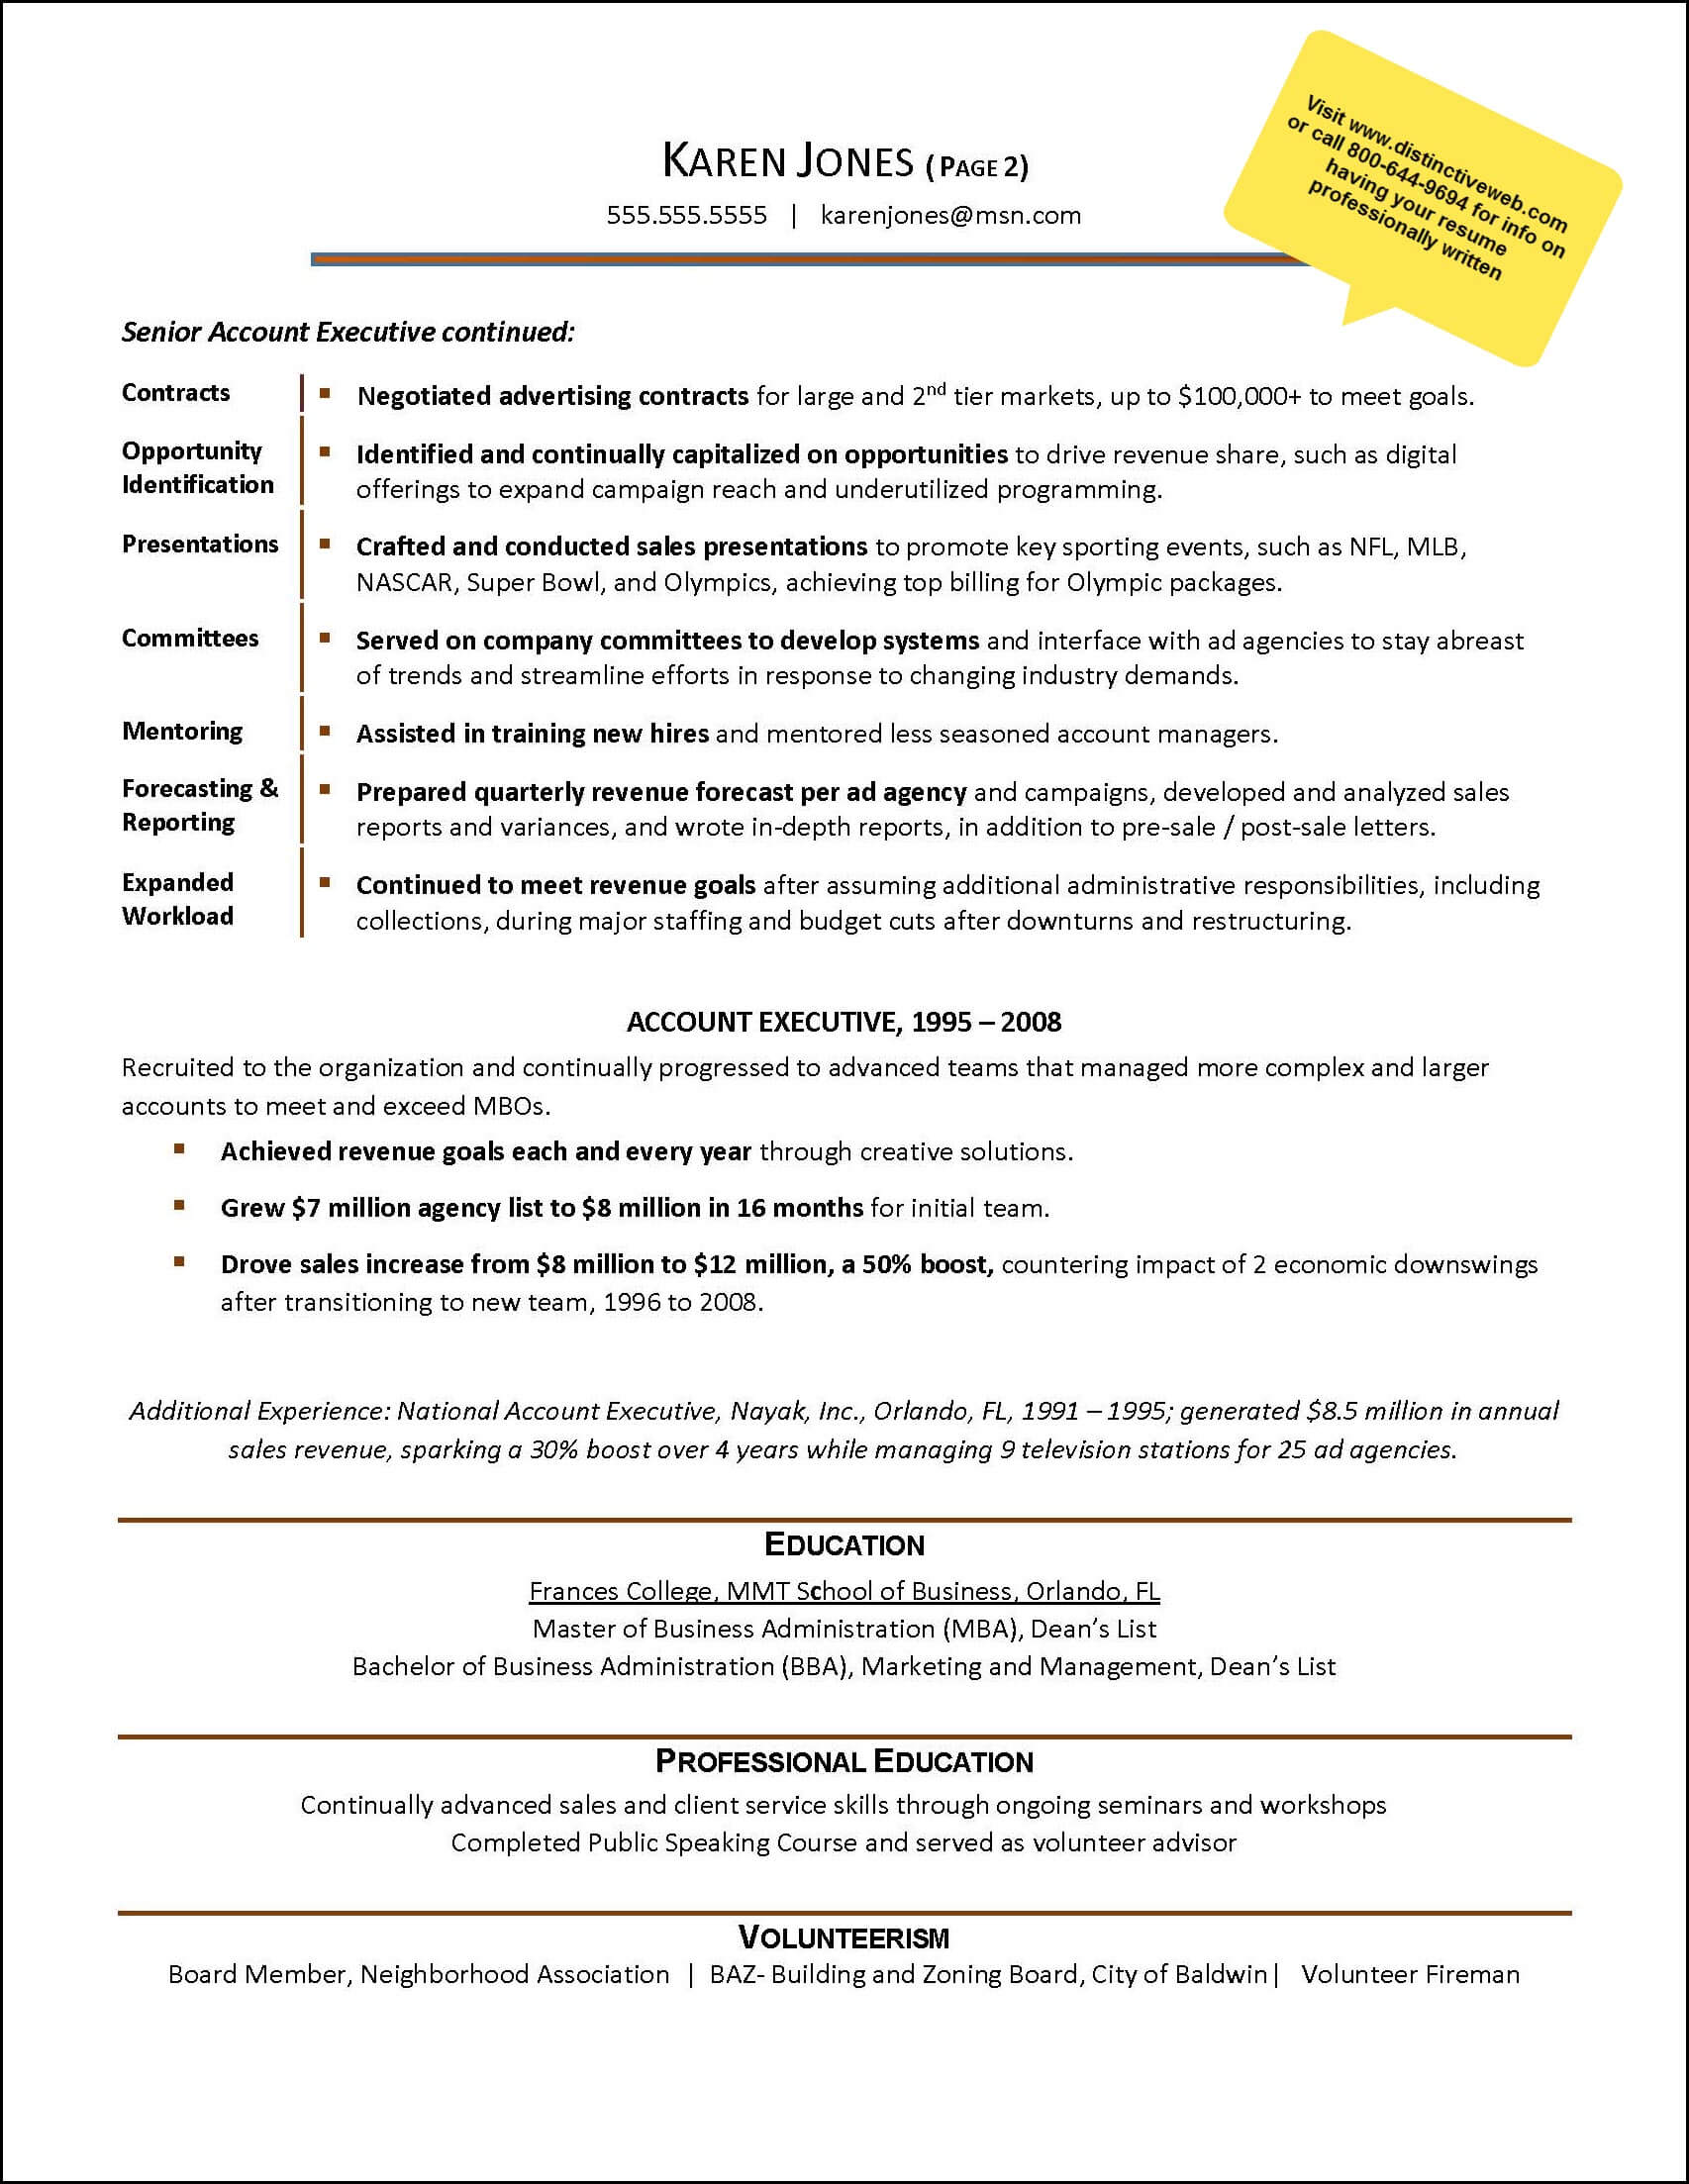 sample resume written to help an advertising industry account executive advance her career page 2 - Mid Career Resume Sample